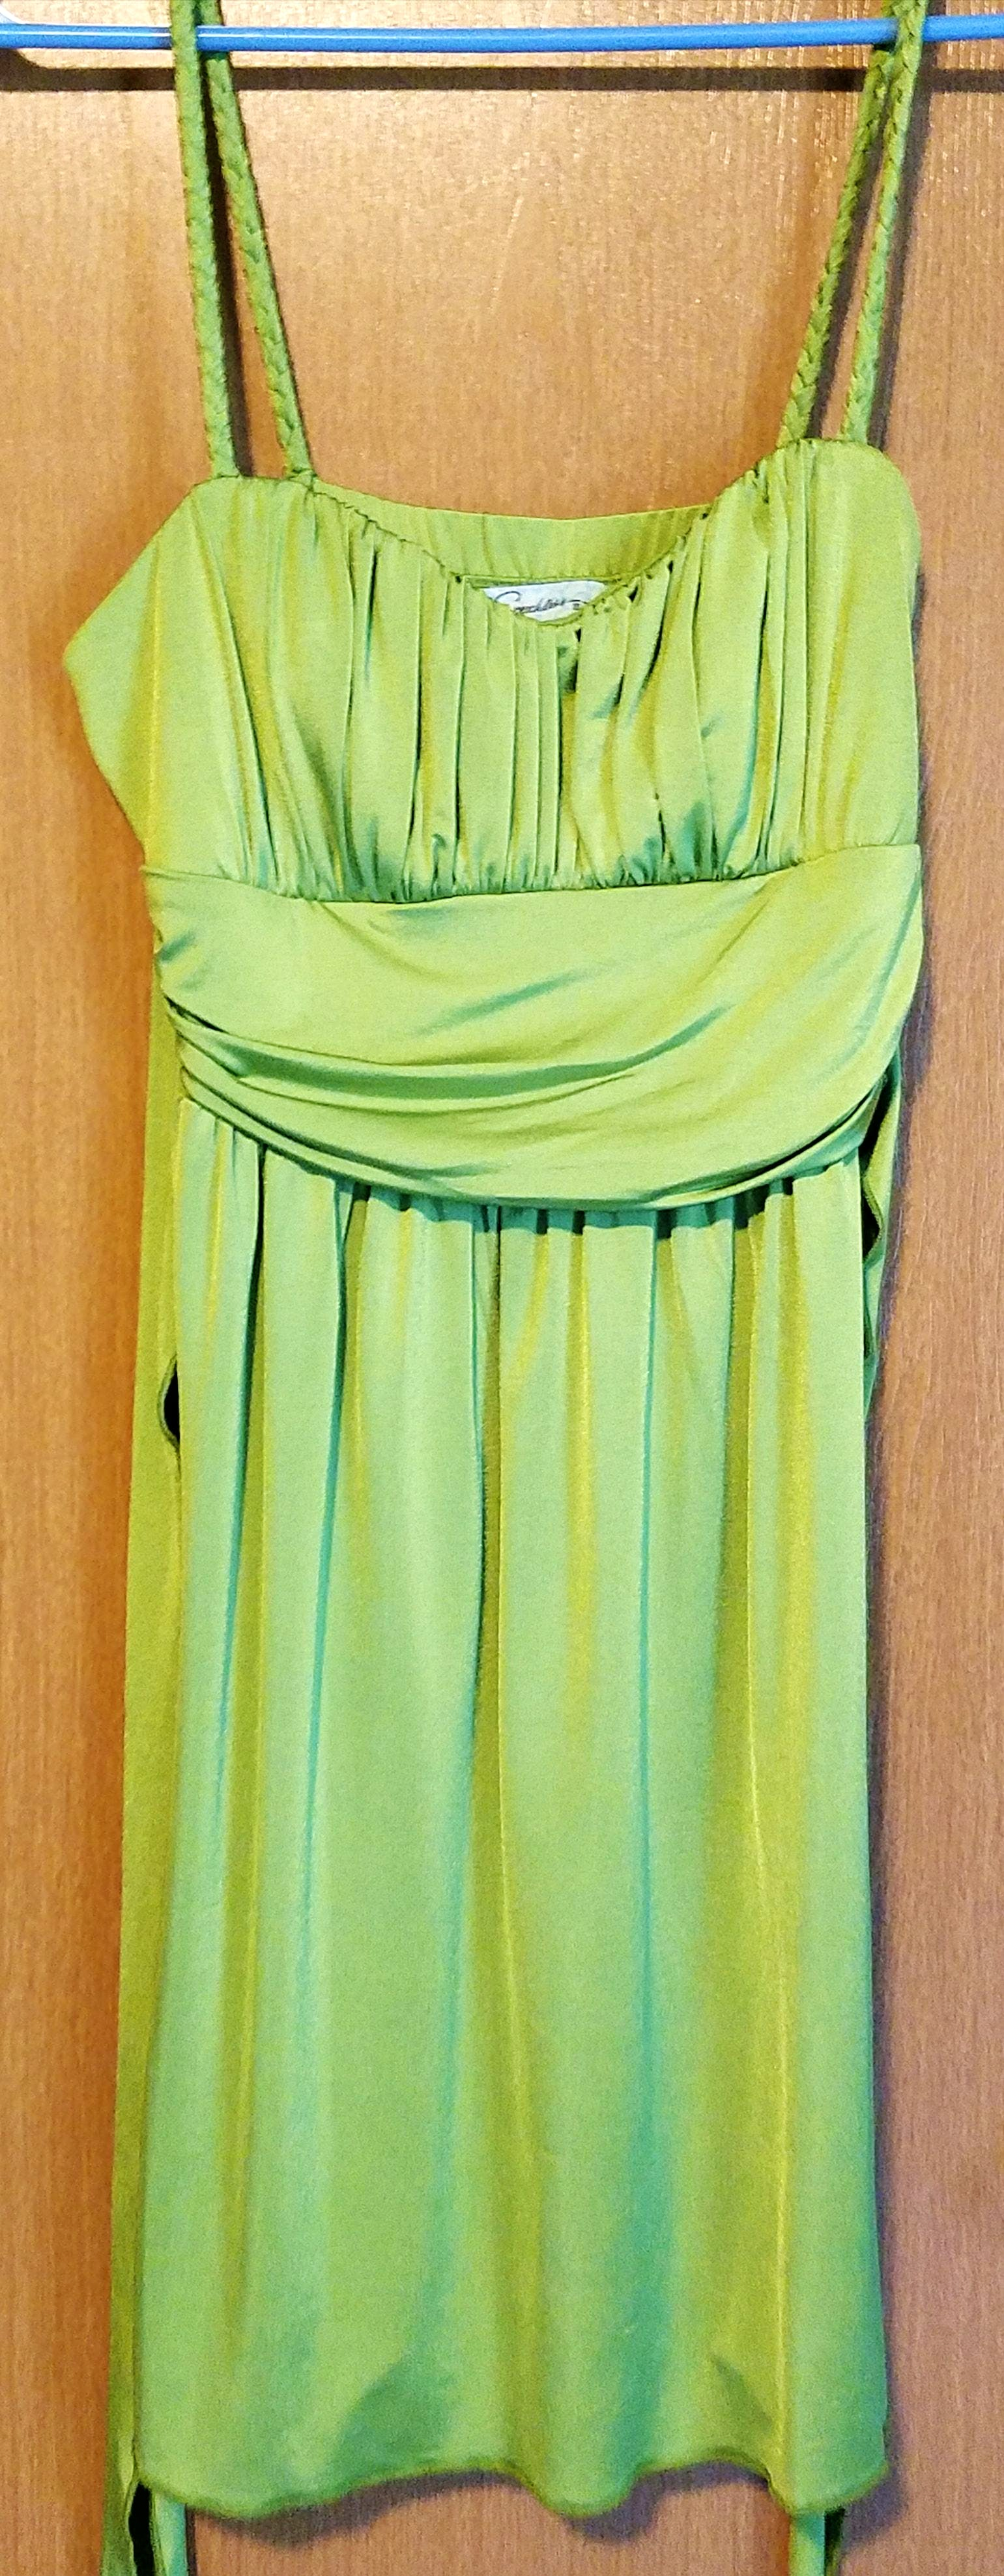 Size Med Sage Green Dress $20